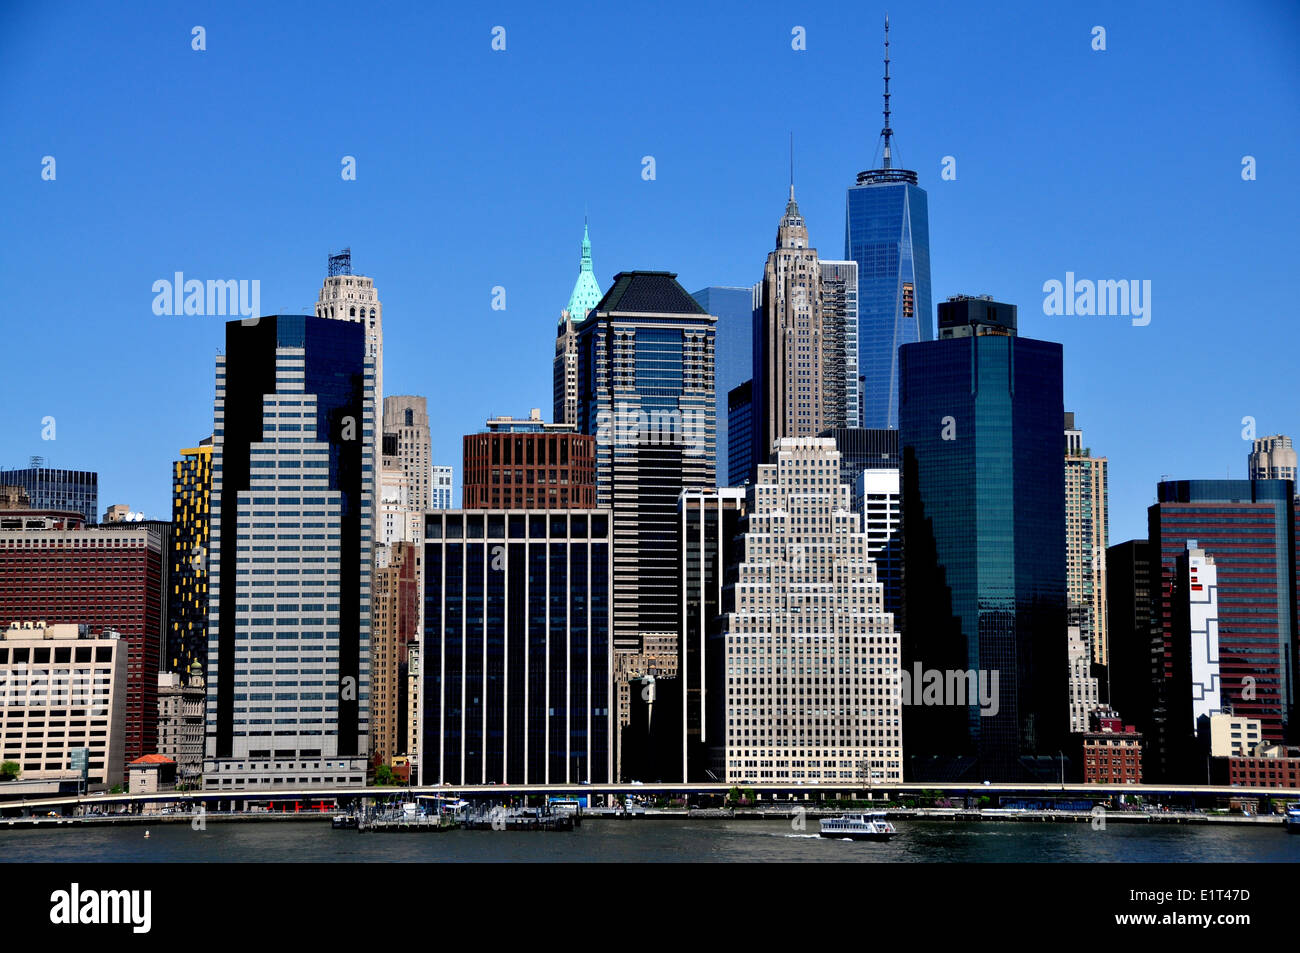 Nyc View Of Lower Manhattan Skyscrapers In The Wall Street Area Seen Stock Photo, Royalty Free